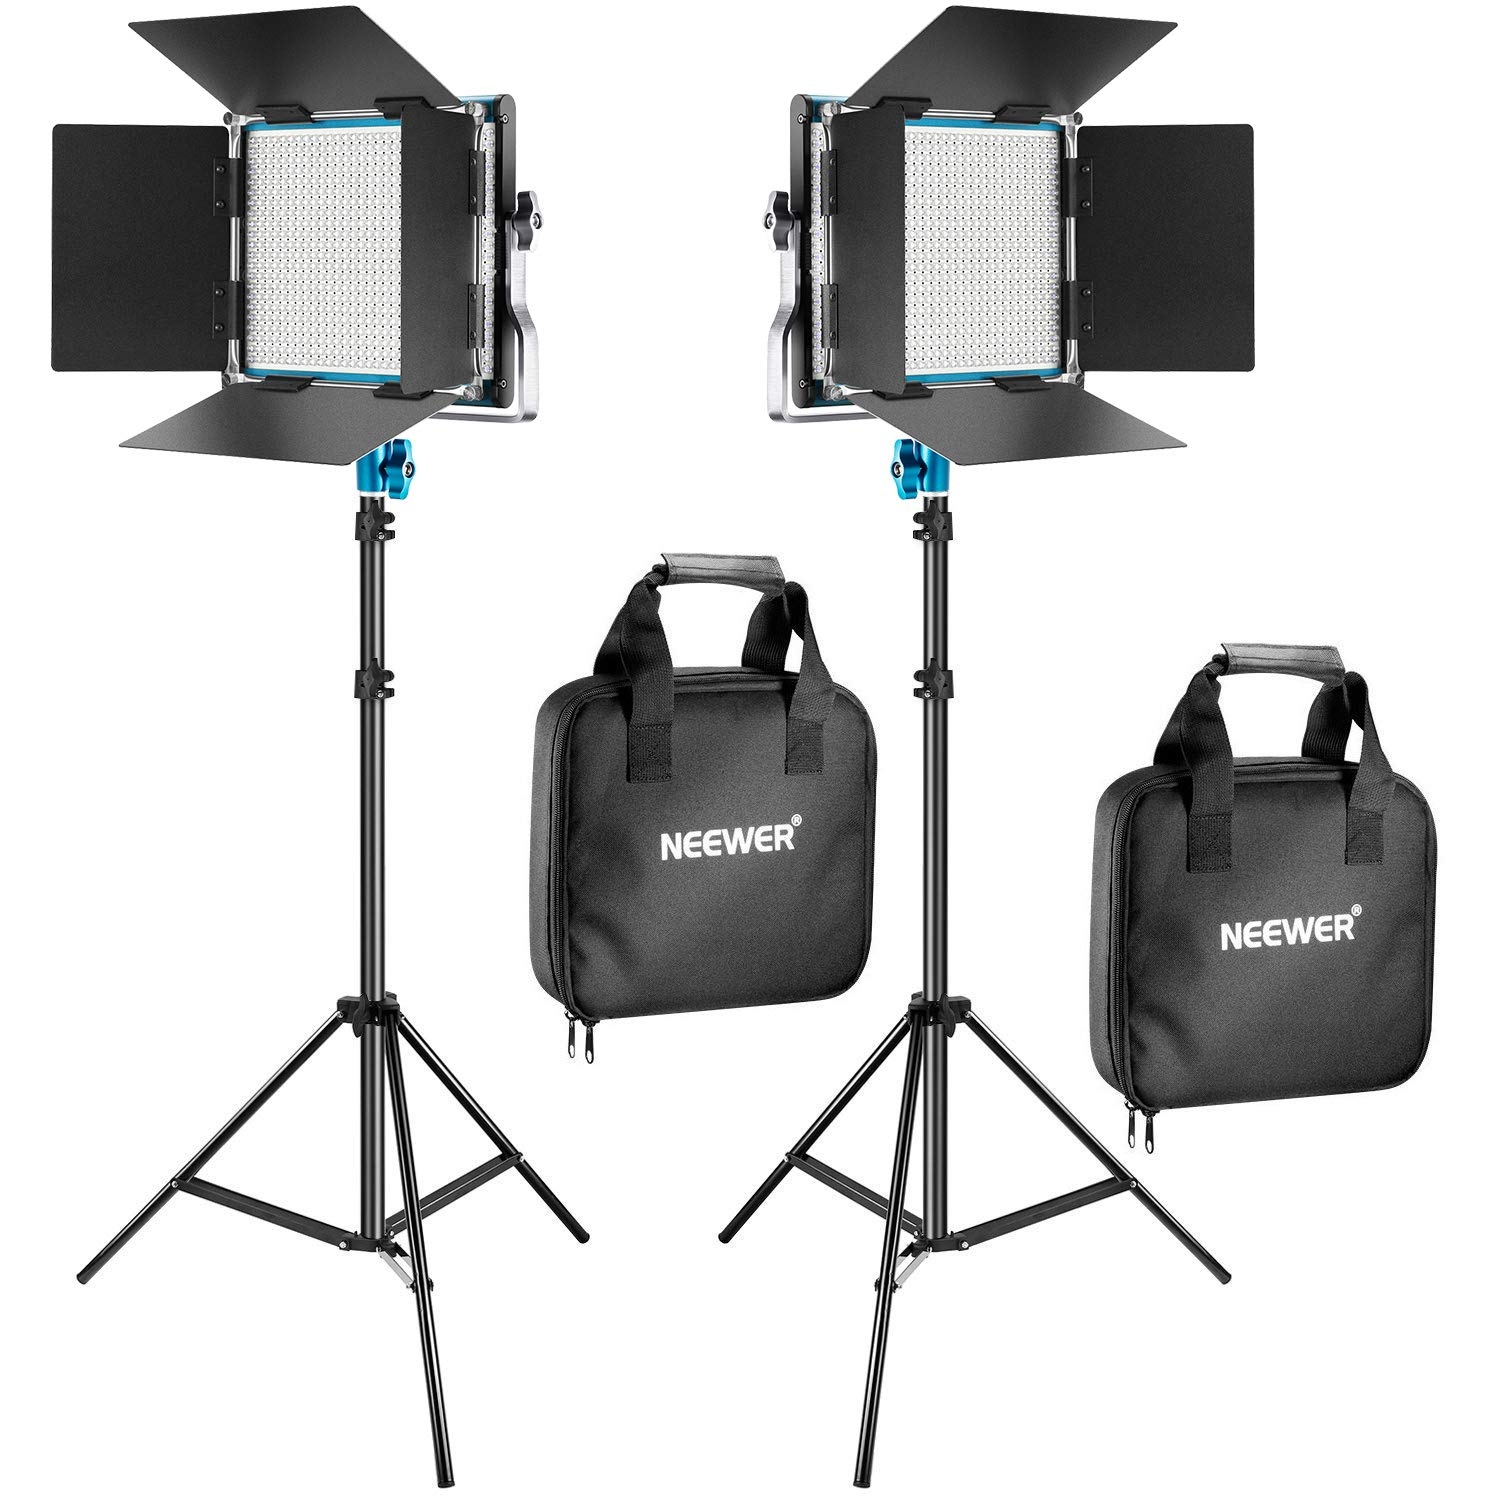 Neewer 2 Packs 660 LED Video Light and Stand Photography Lighting Kit: Dimmable LED Panel (3200-5600K, CRI 96+, Blue) with Heavy Duty Light Stand for Studio Portrait Product Video Shooting